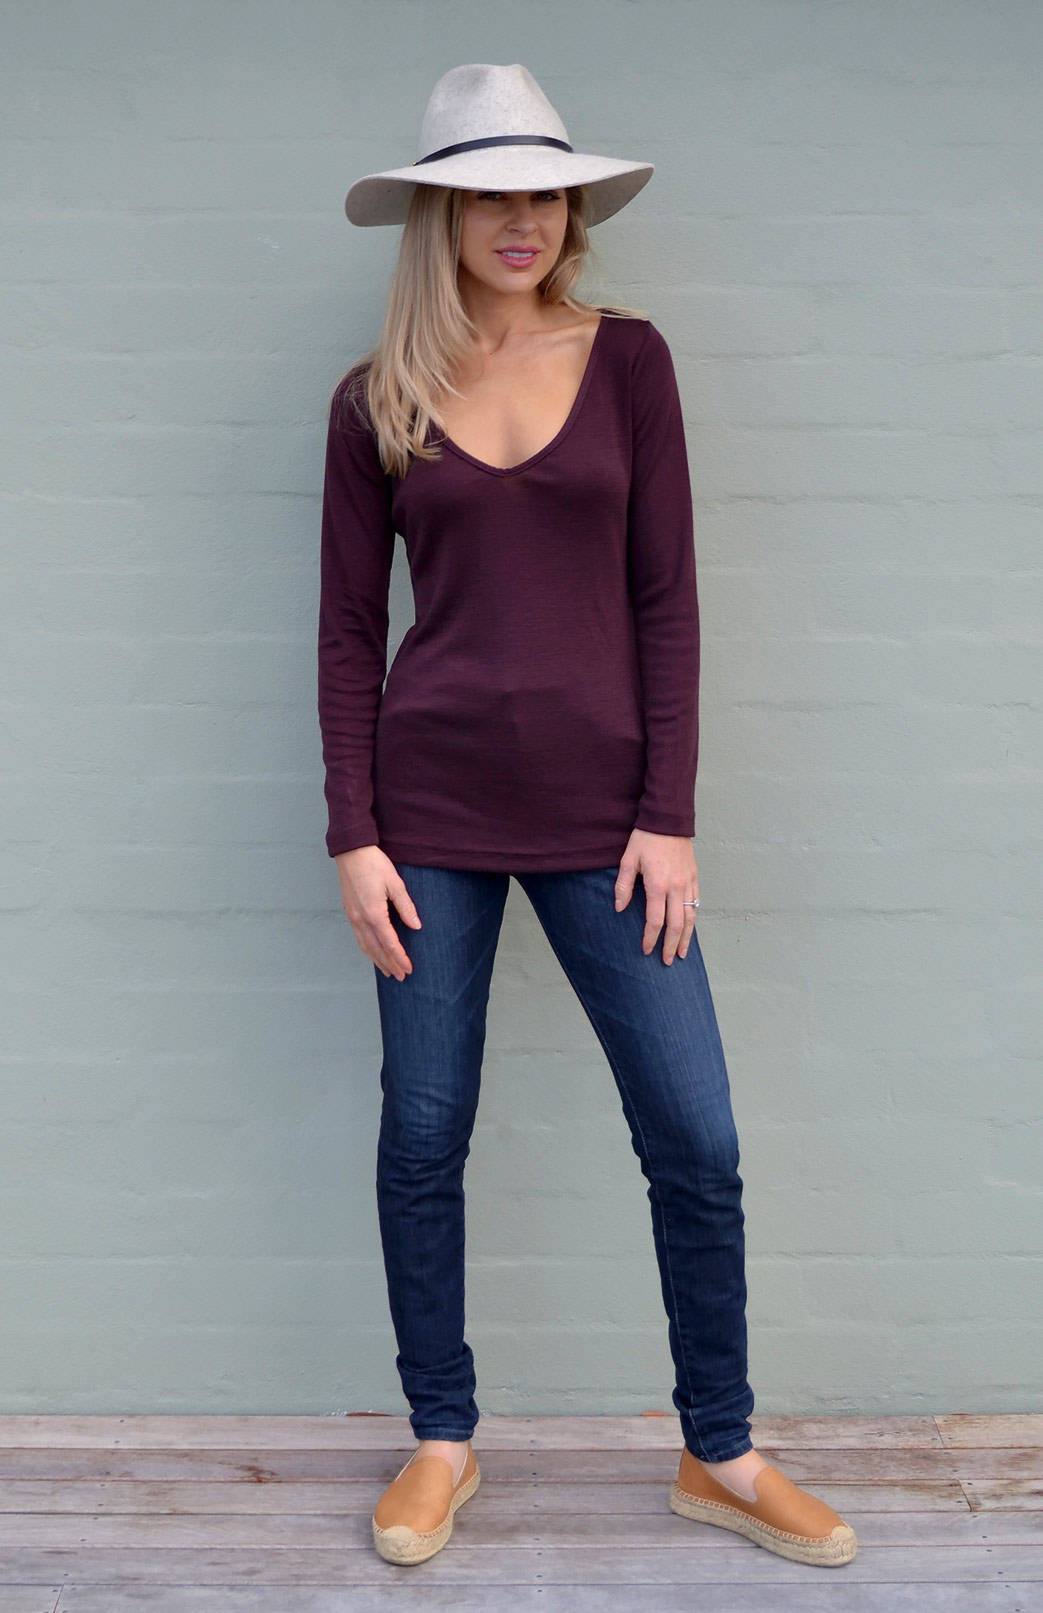 V-Neck Top (Rib) - Women's Raisin Purple Long Sleeved V-Neck Top - Smitten Merino Tasmania Australia